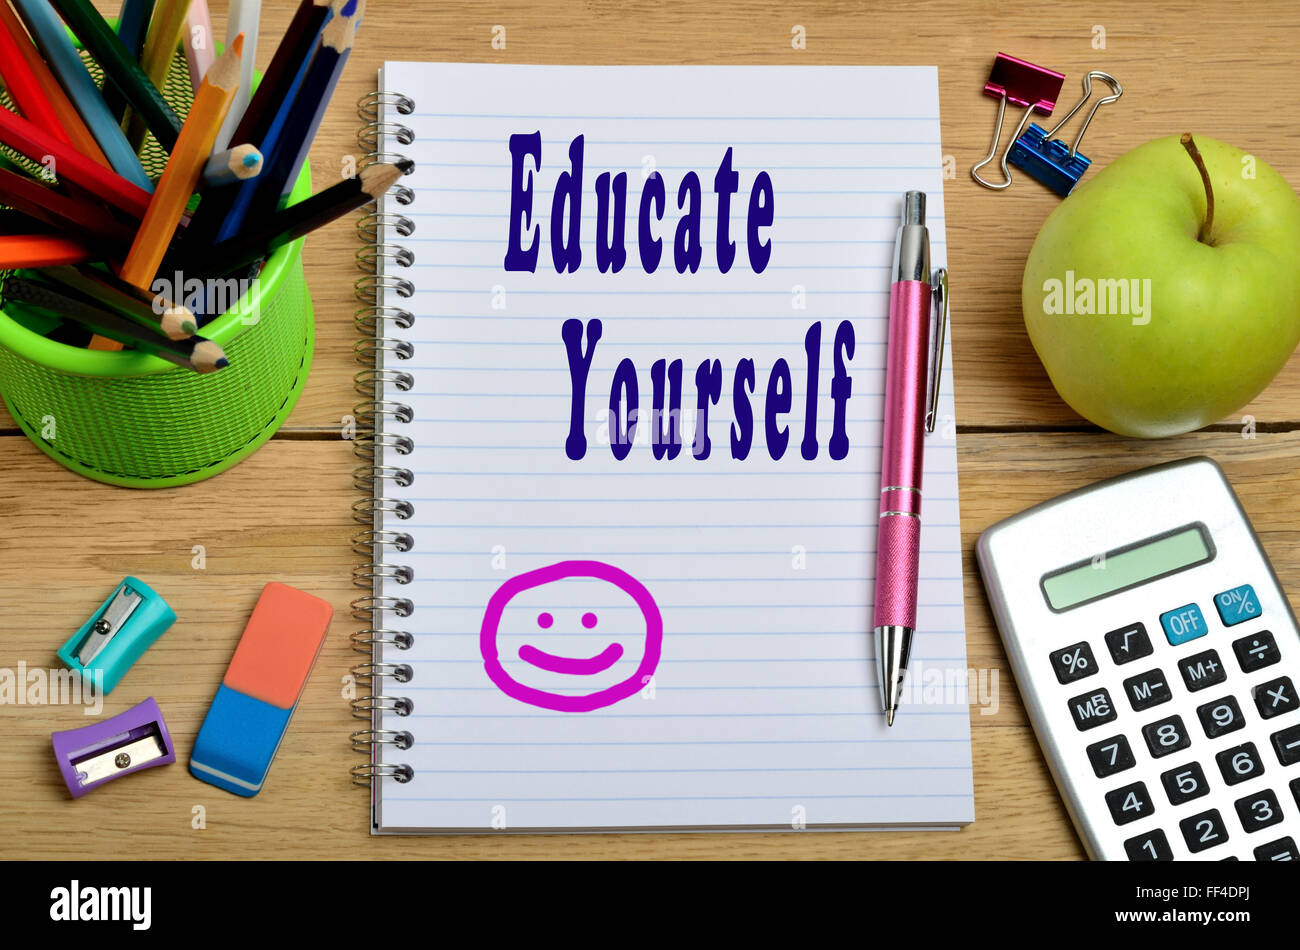 Educate yourself words on notebook - Stock Image